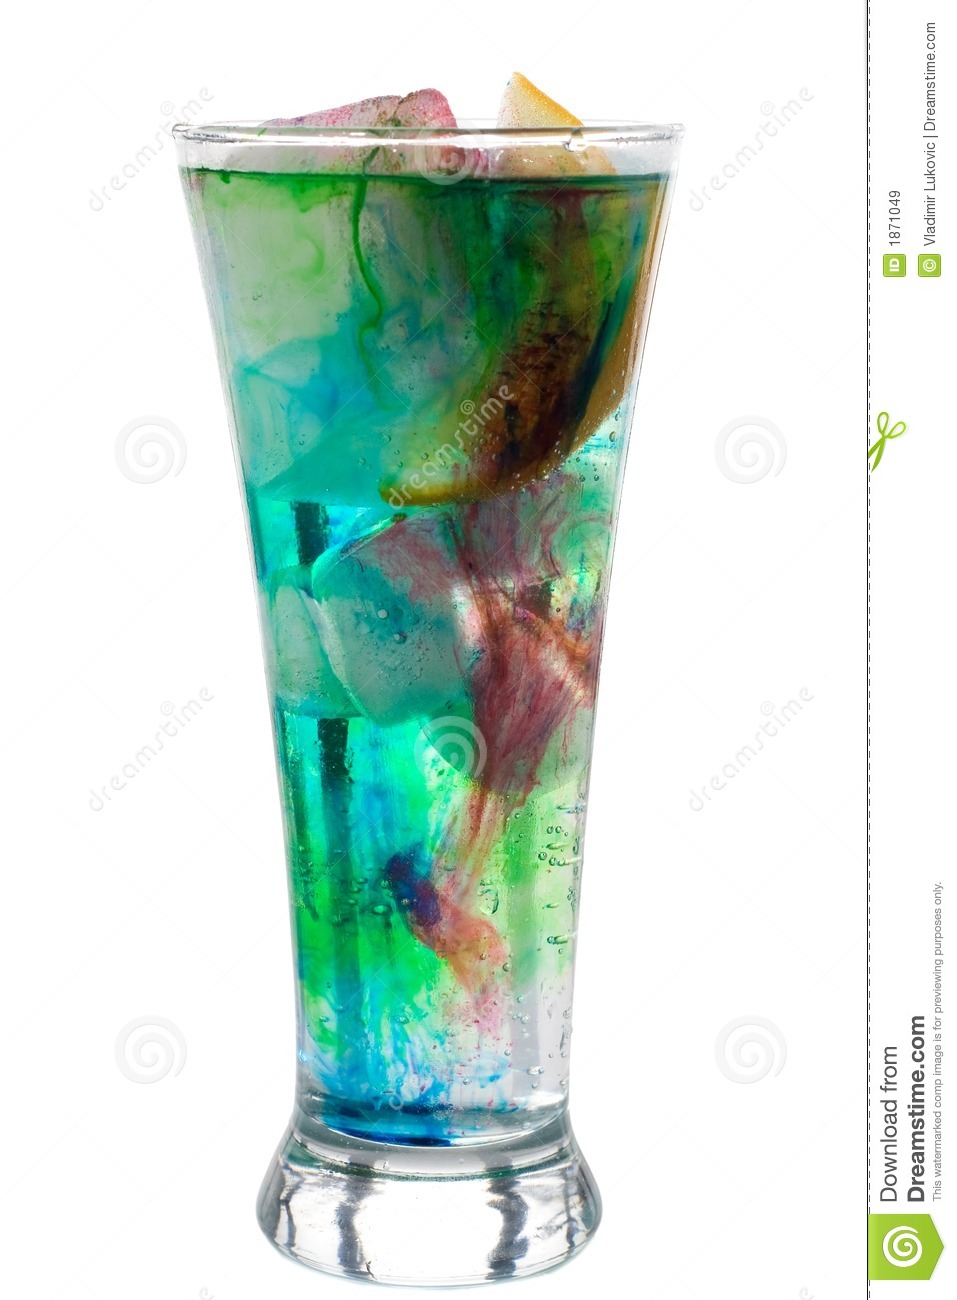 Glass Lamp Vector Psychedelic Drink Stock Image. Image Of Macro, Effect